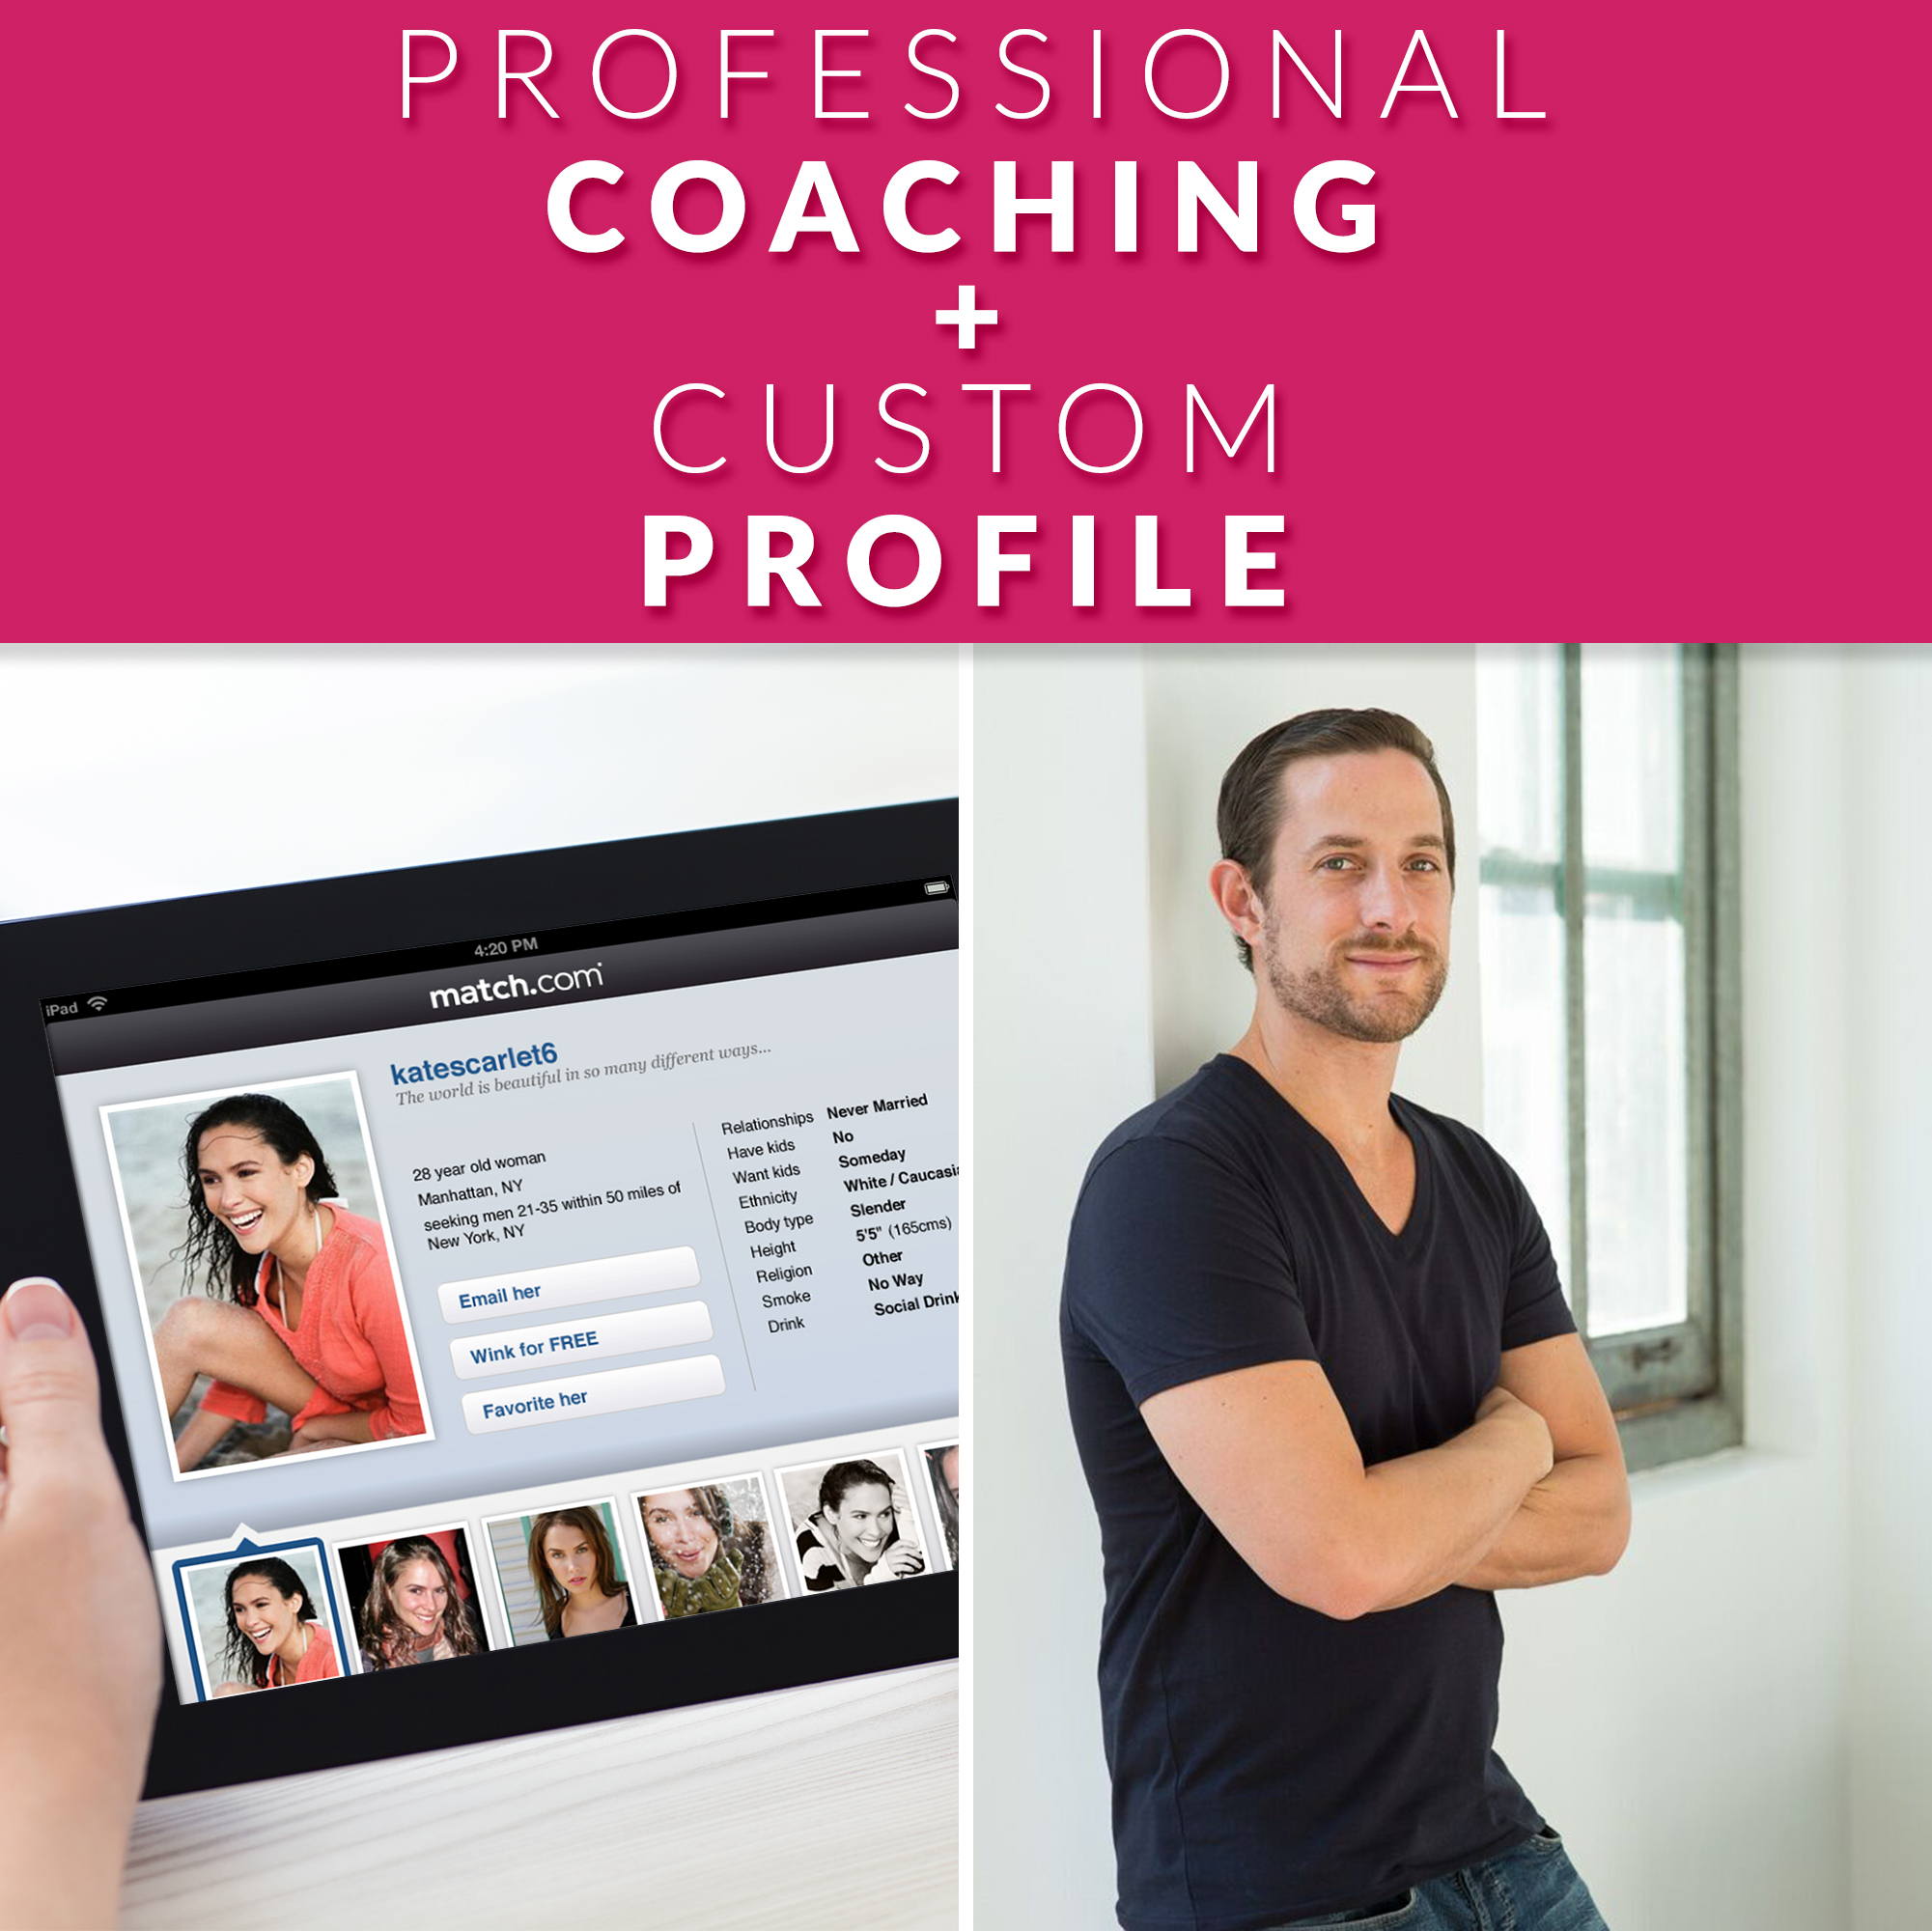 2 Months Of Coaching + A Profile Written Exclusively By Joshua Pompey +  Free Copy of Online Rules of Love!